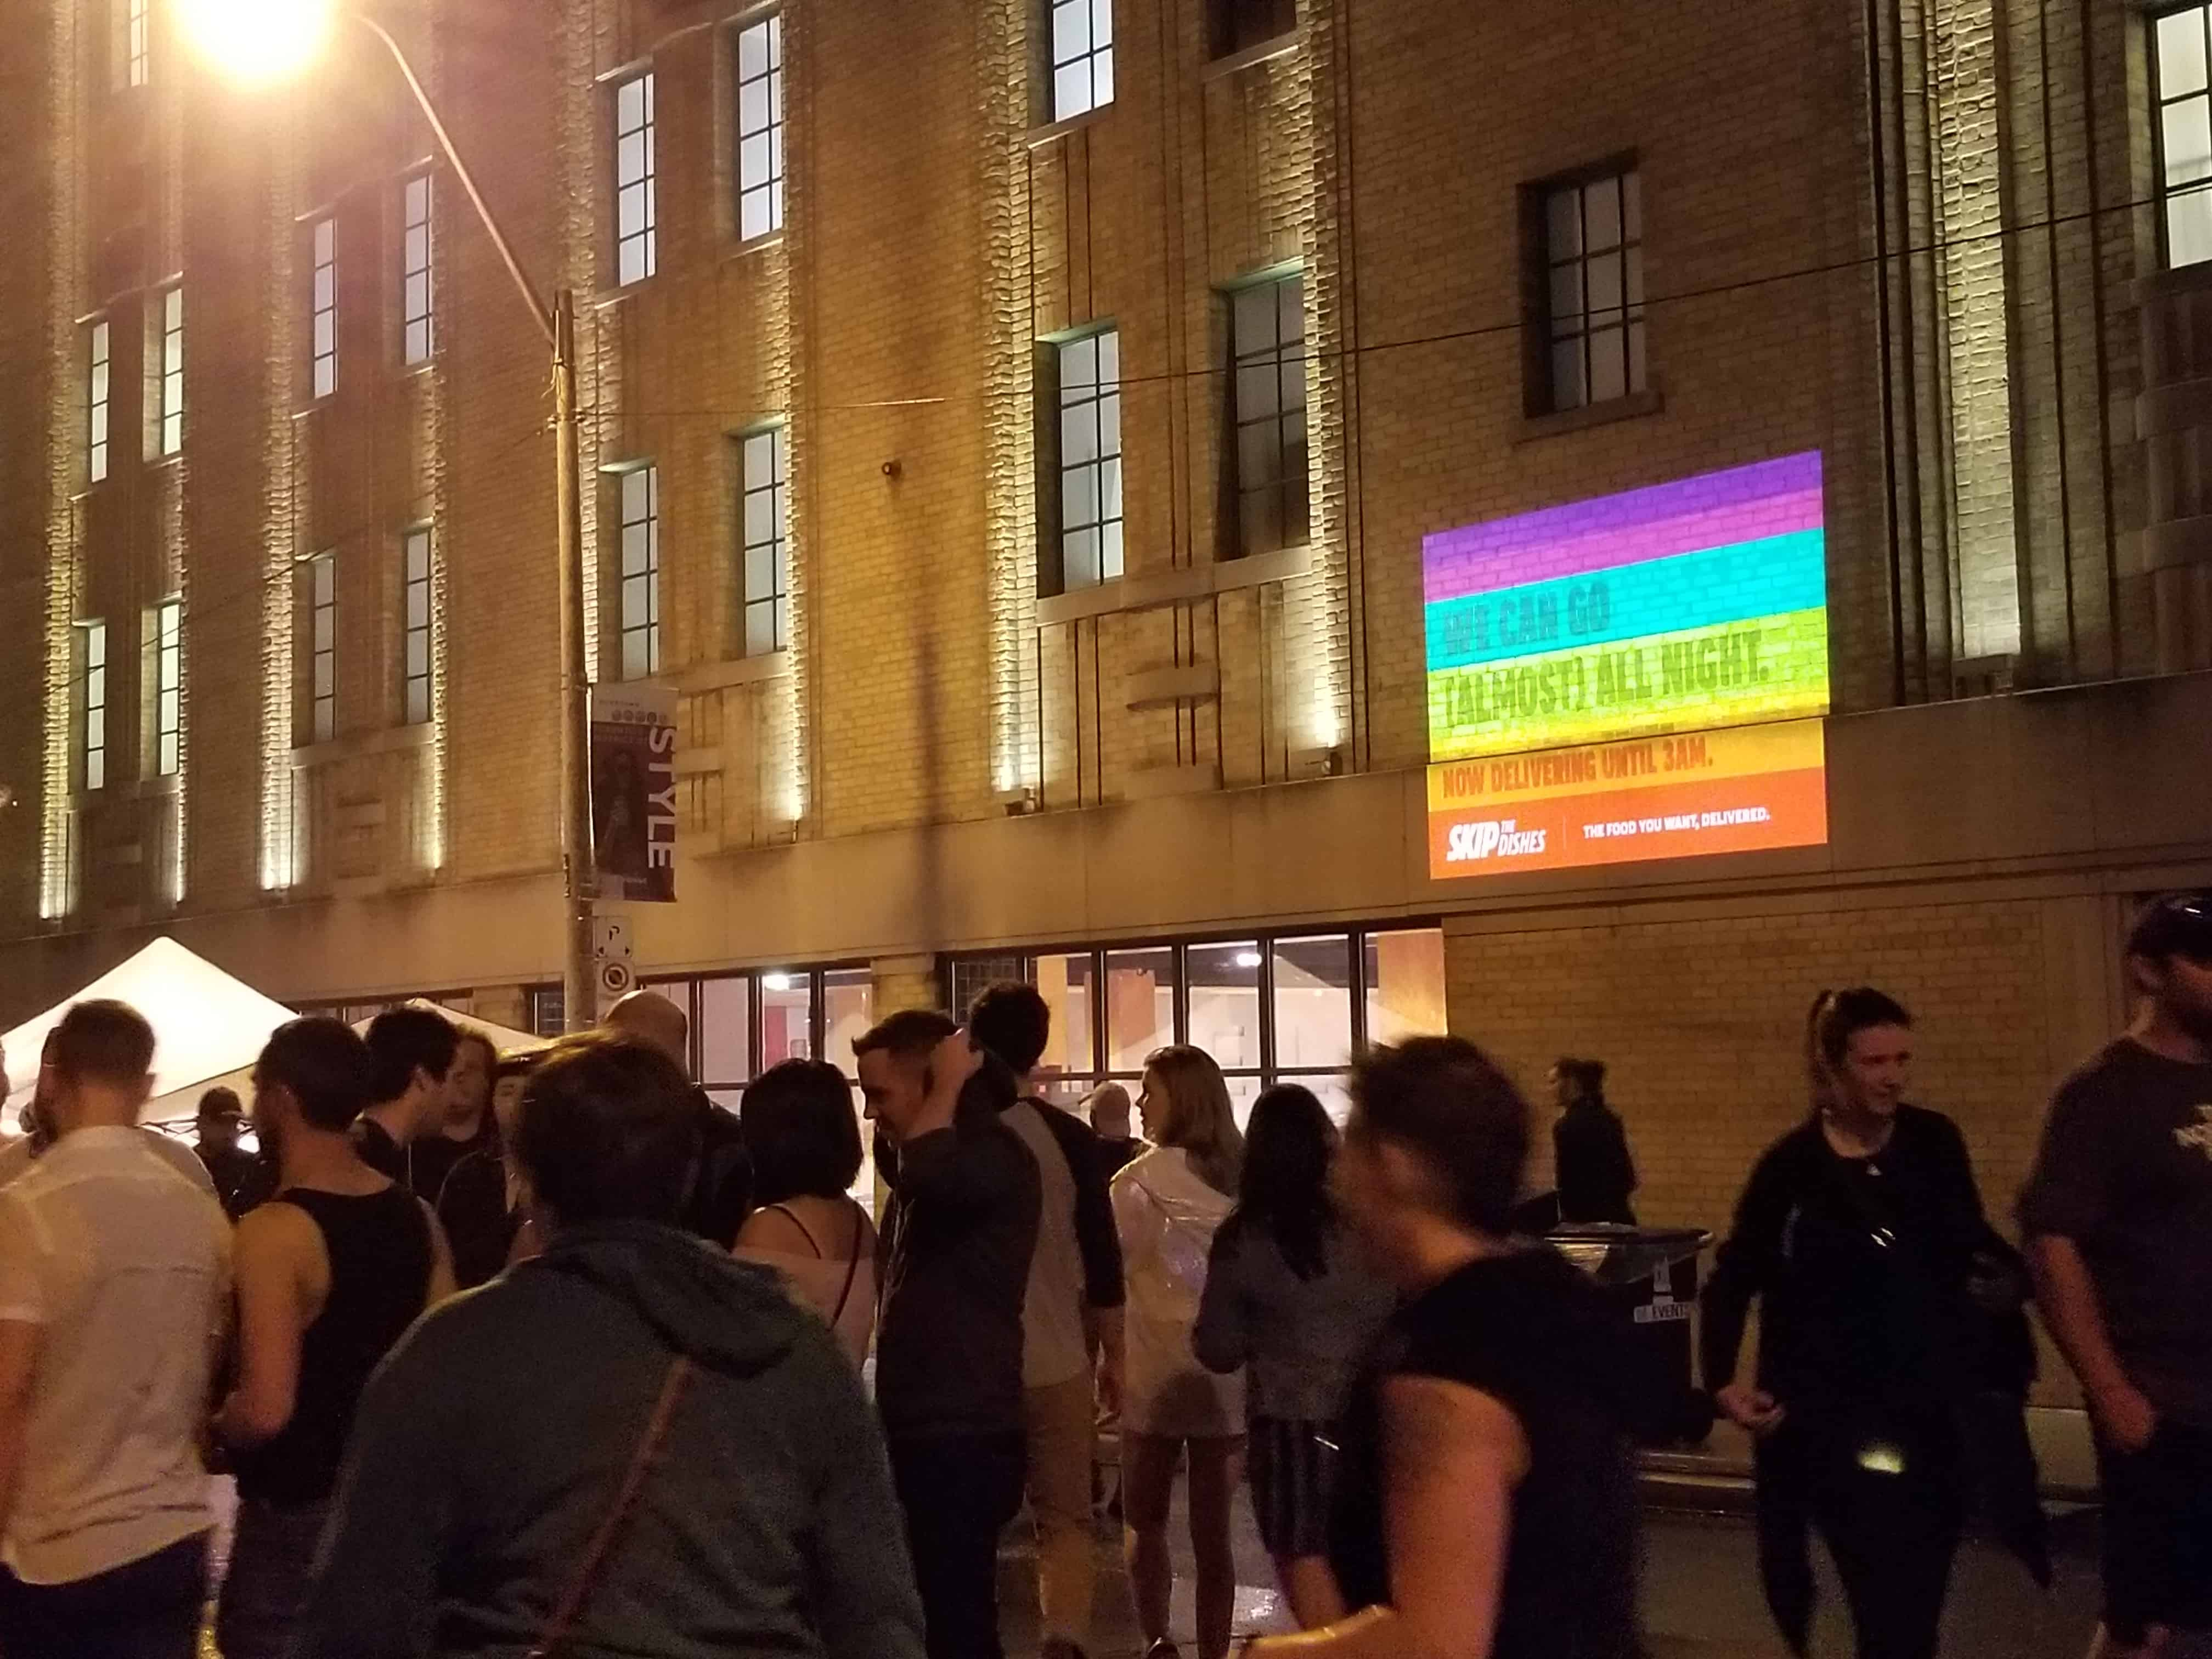 outdoor guerrilla advertising wall projection